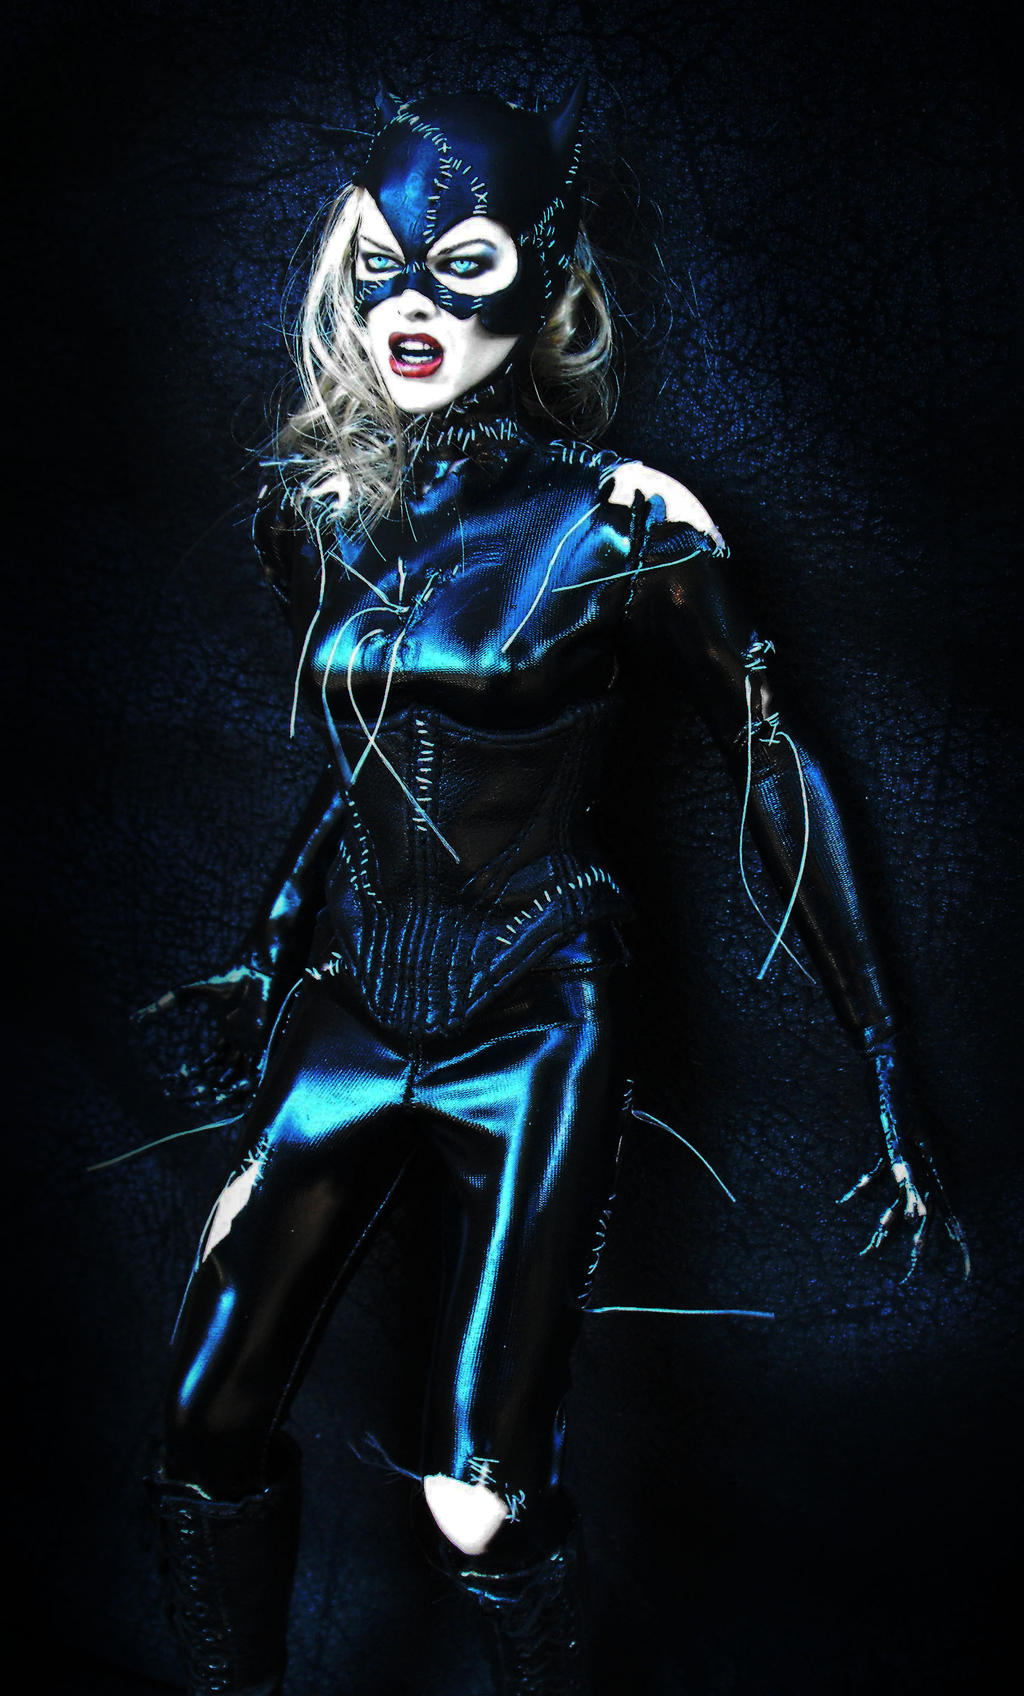 Find great deals on eBay for michelle pfeiffer catwoman costume. Shop with confidence.